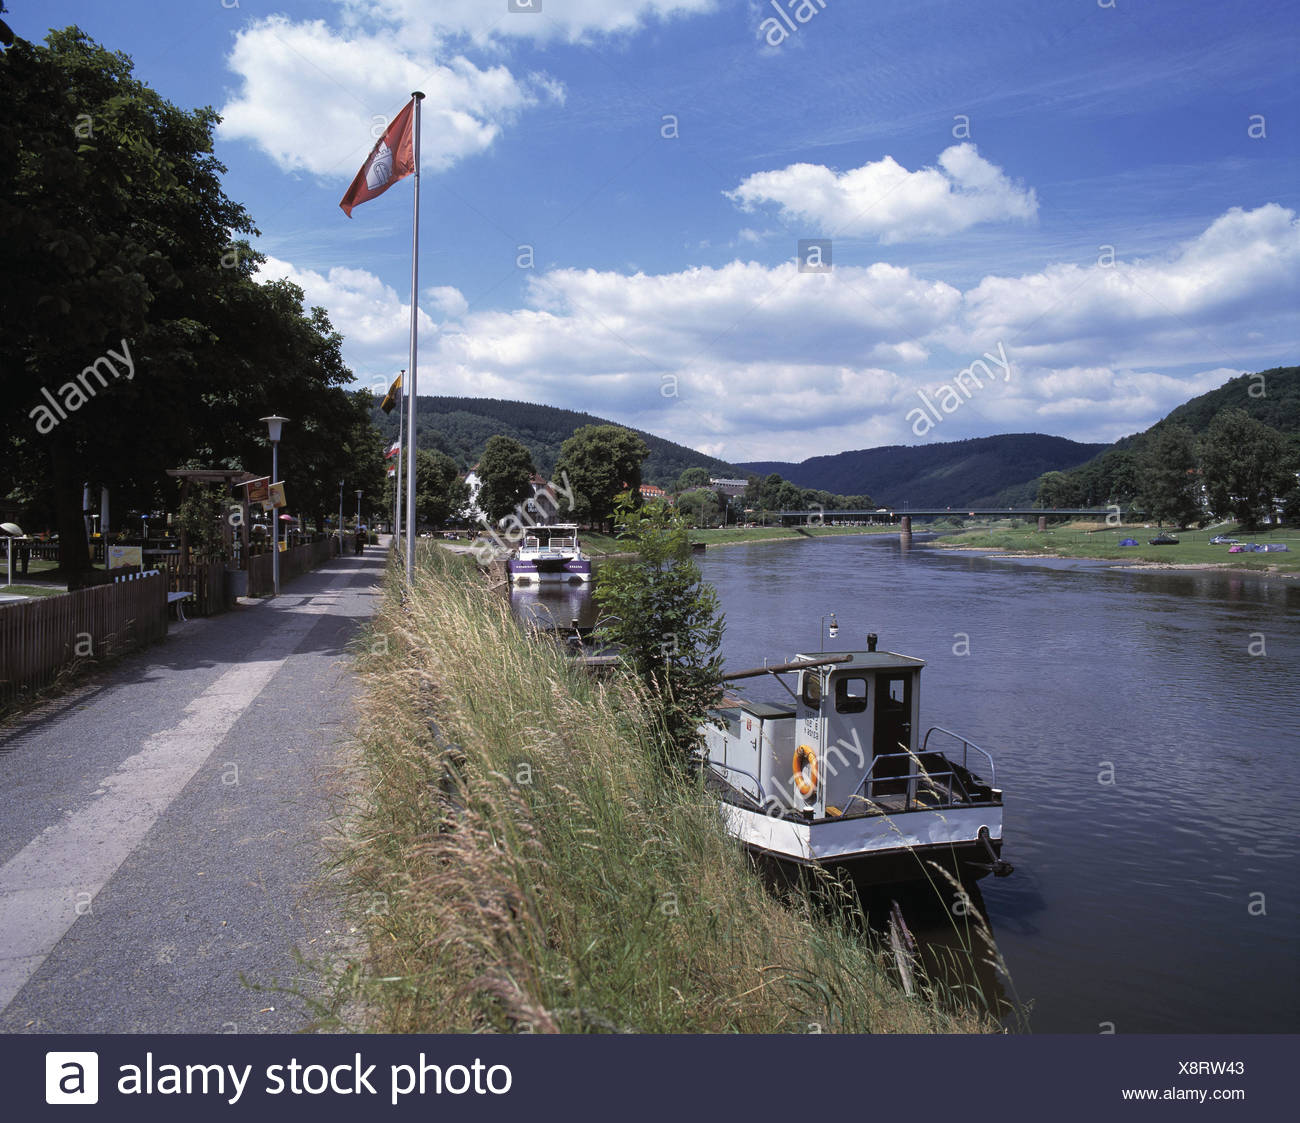 Germany,Hessen,bath Karl's harbour,the Weser,Diemel,promenade,ship dock,river,summer,scenery,nature,ships,ship investors,water,clouds,Weser scenery,Weser mountainous country,mouth area,river,rivers,confluence,bank promenade,shore, - Stock Image